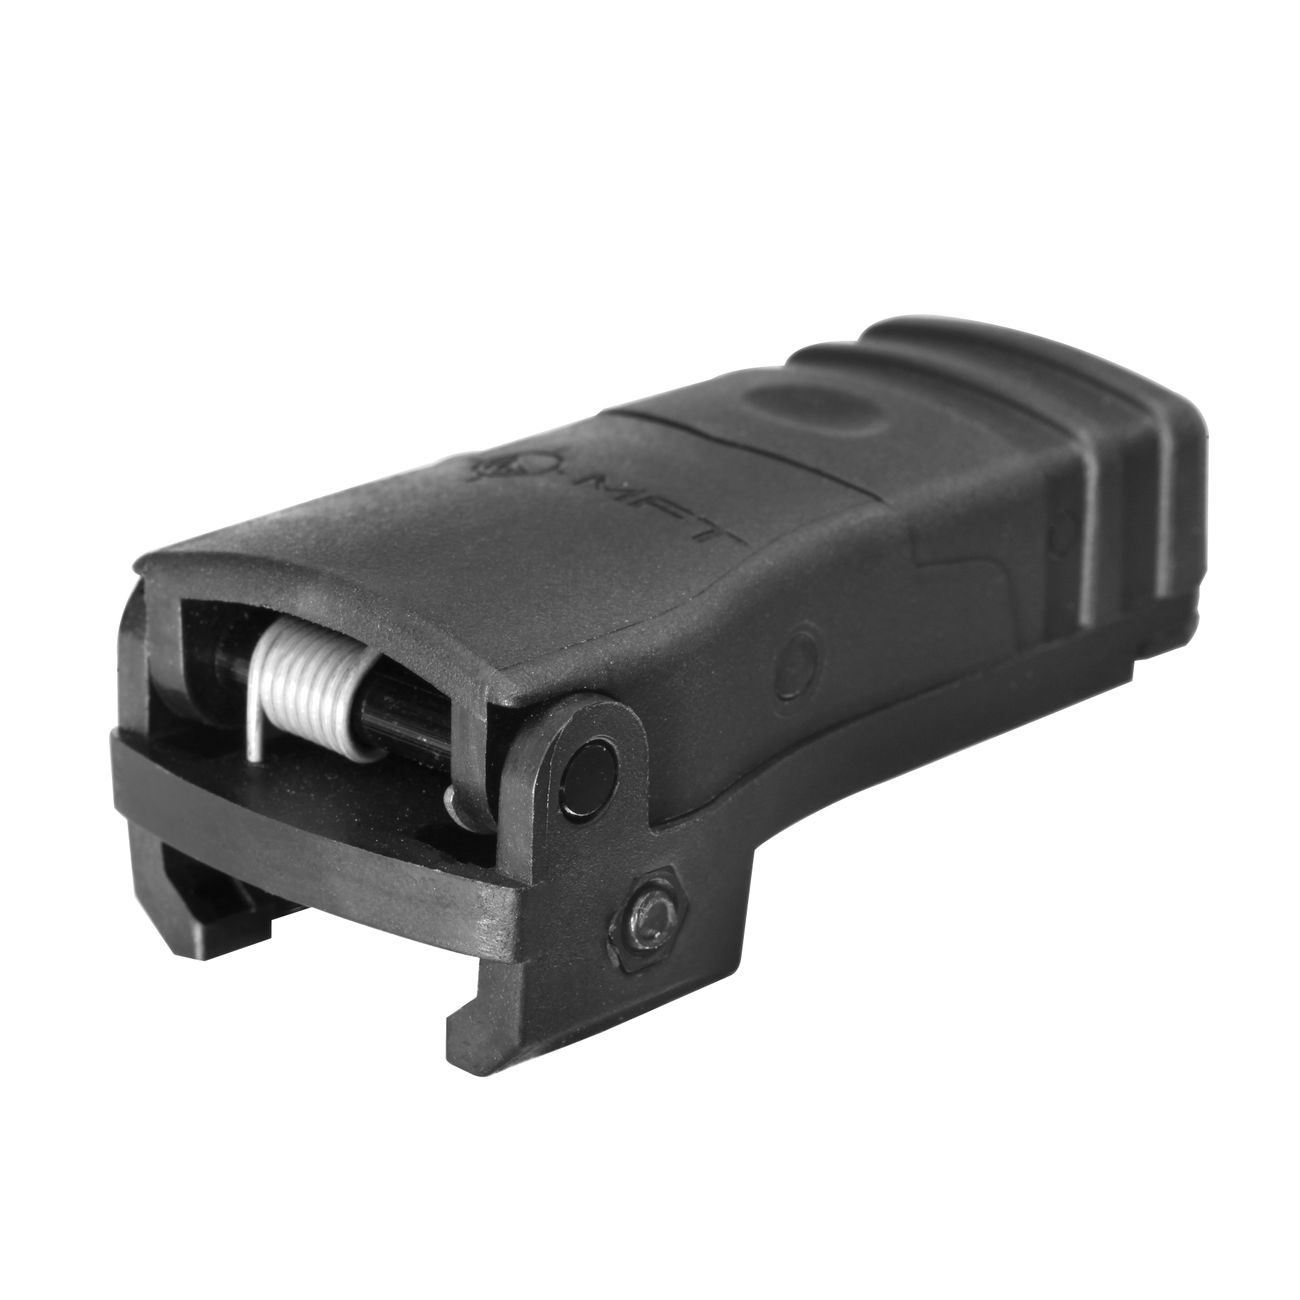 MFT BUPSWR Polymer Flip-Up Rear Sight f. 21mm Schienen schwarz 2